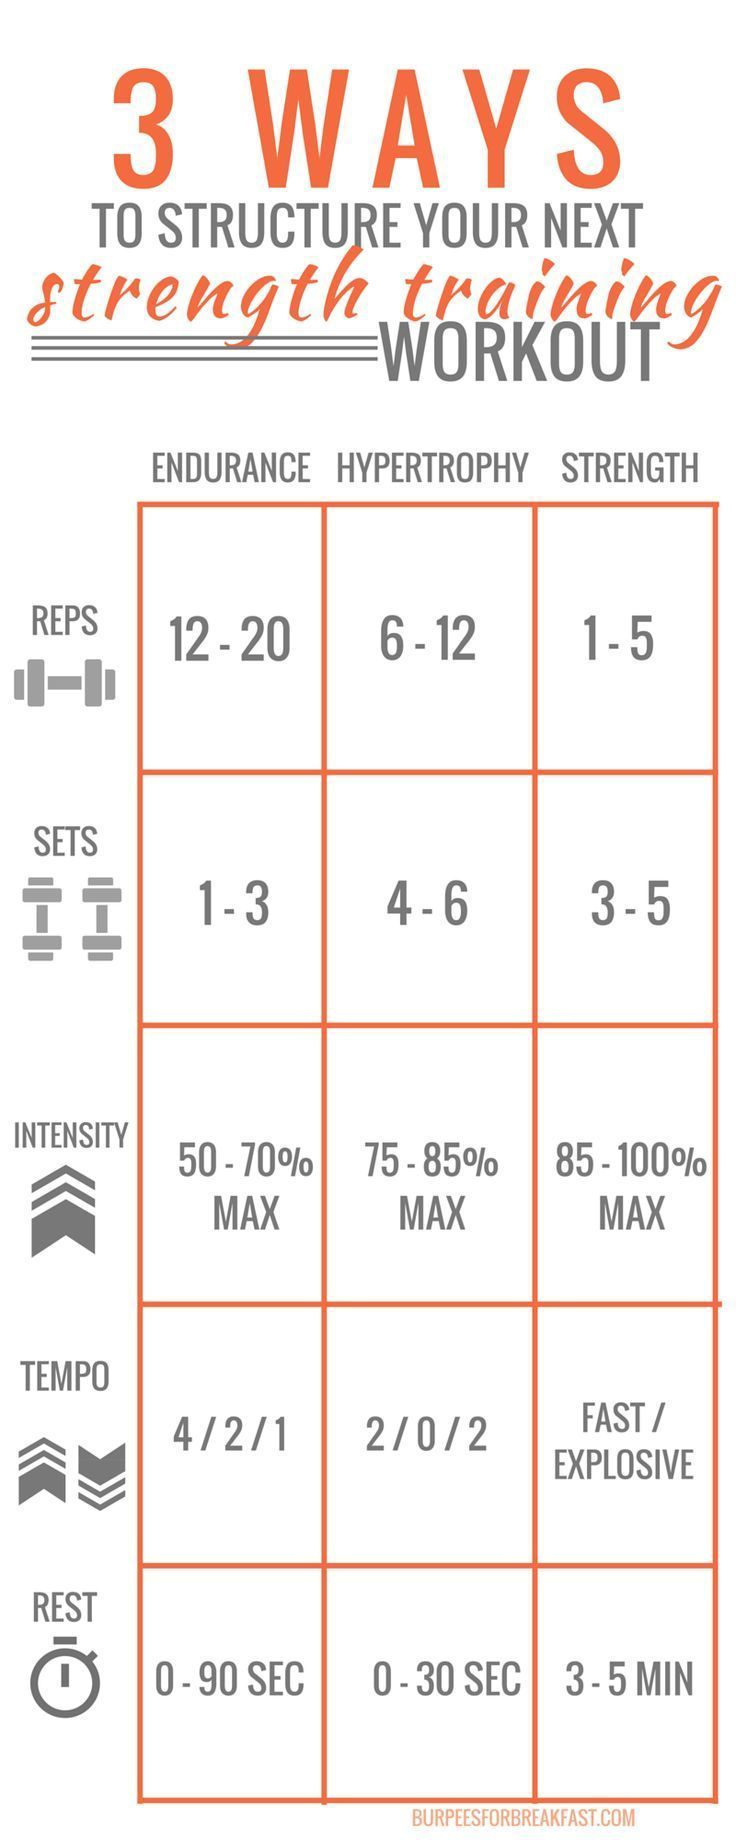 Awesome guide for setting up your personal weight training plan. Reps, sets, intensity, tempo and rest for all your workouts.